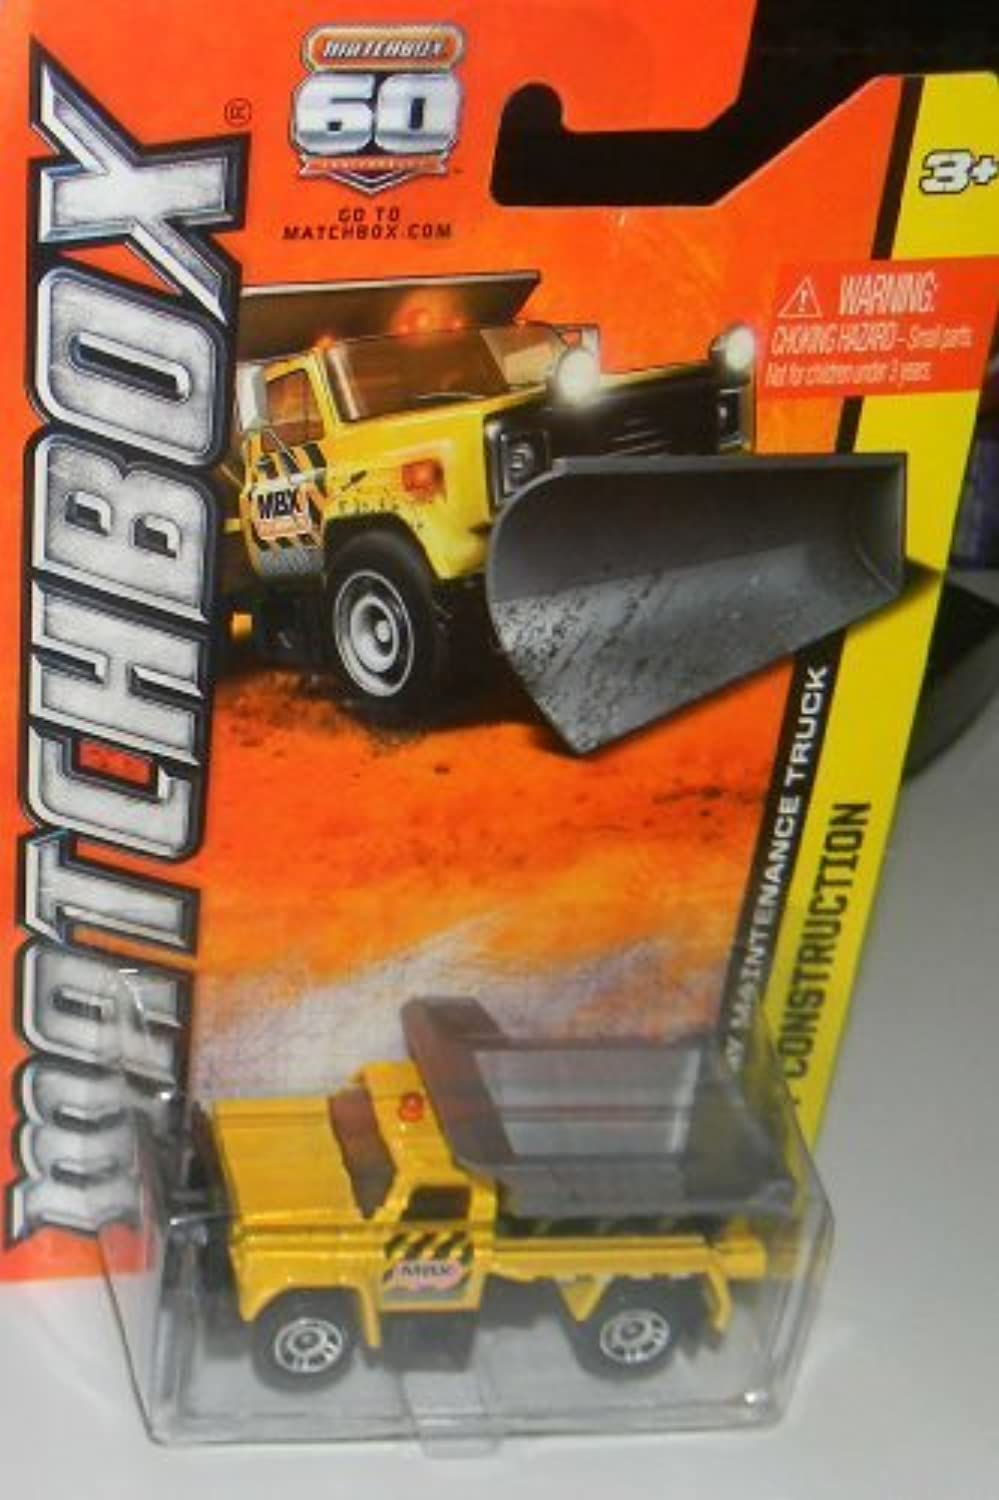 2012 MATCHBOX HIGHWAY MAINTENANCE VEHICLE 28 120 (YELLOW) by Matchbox